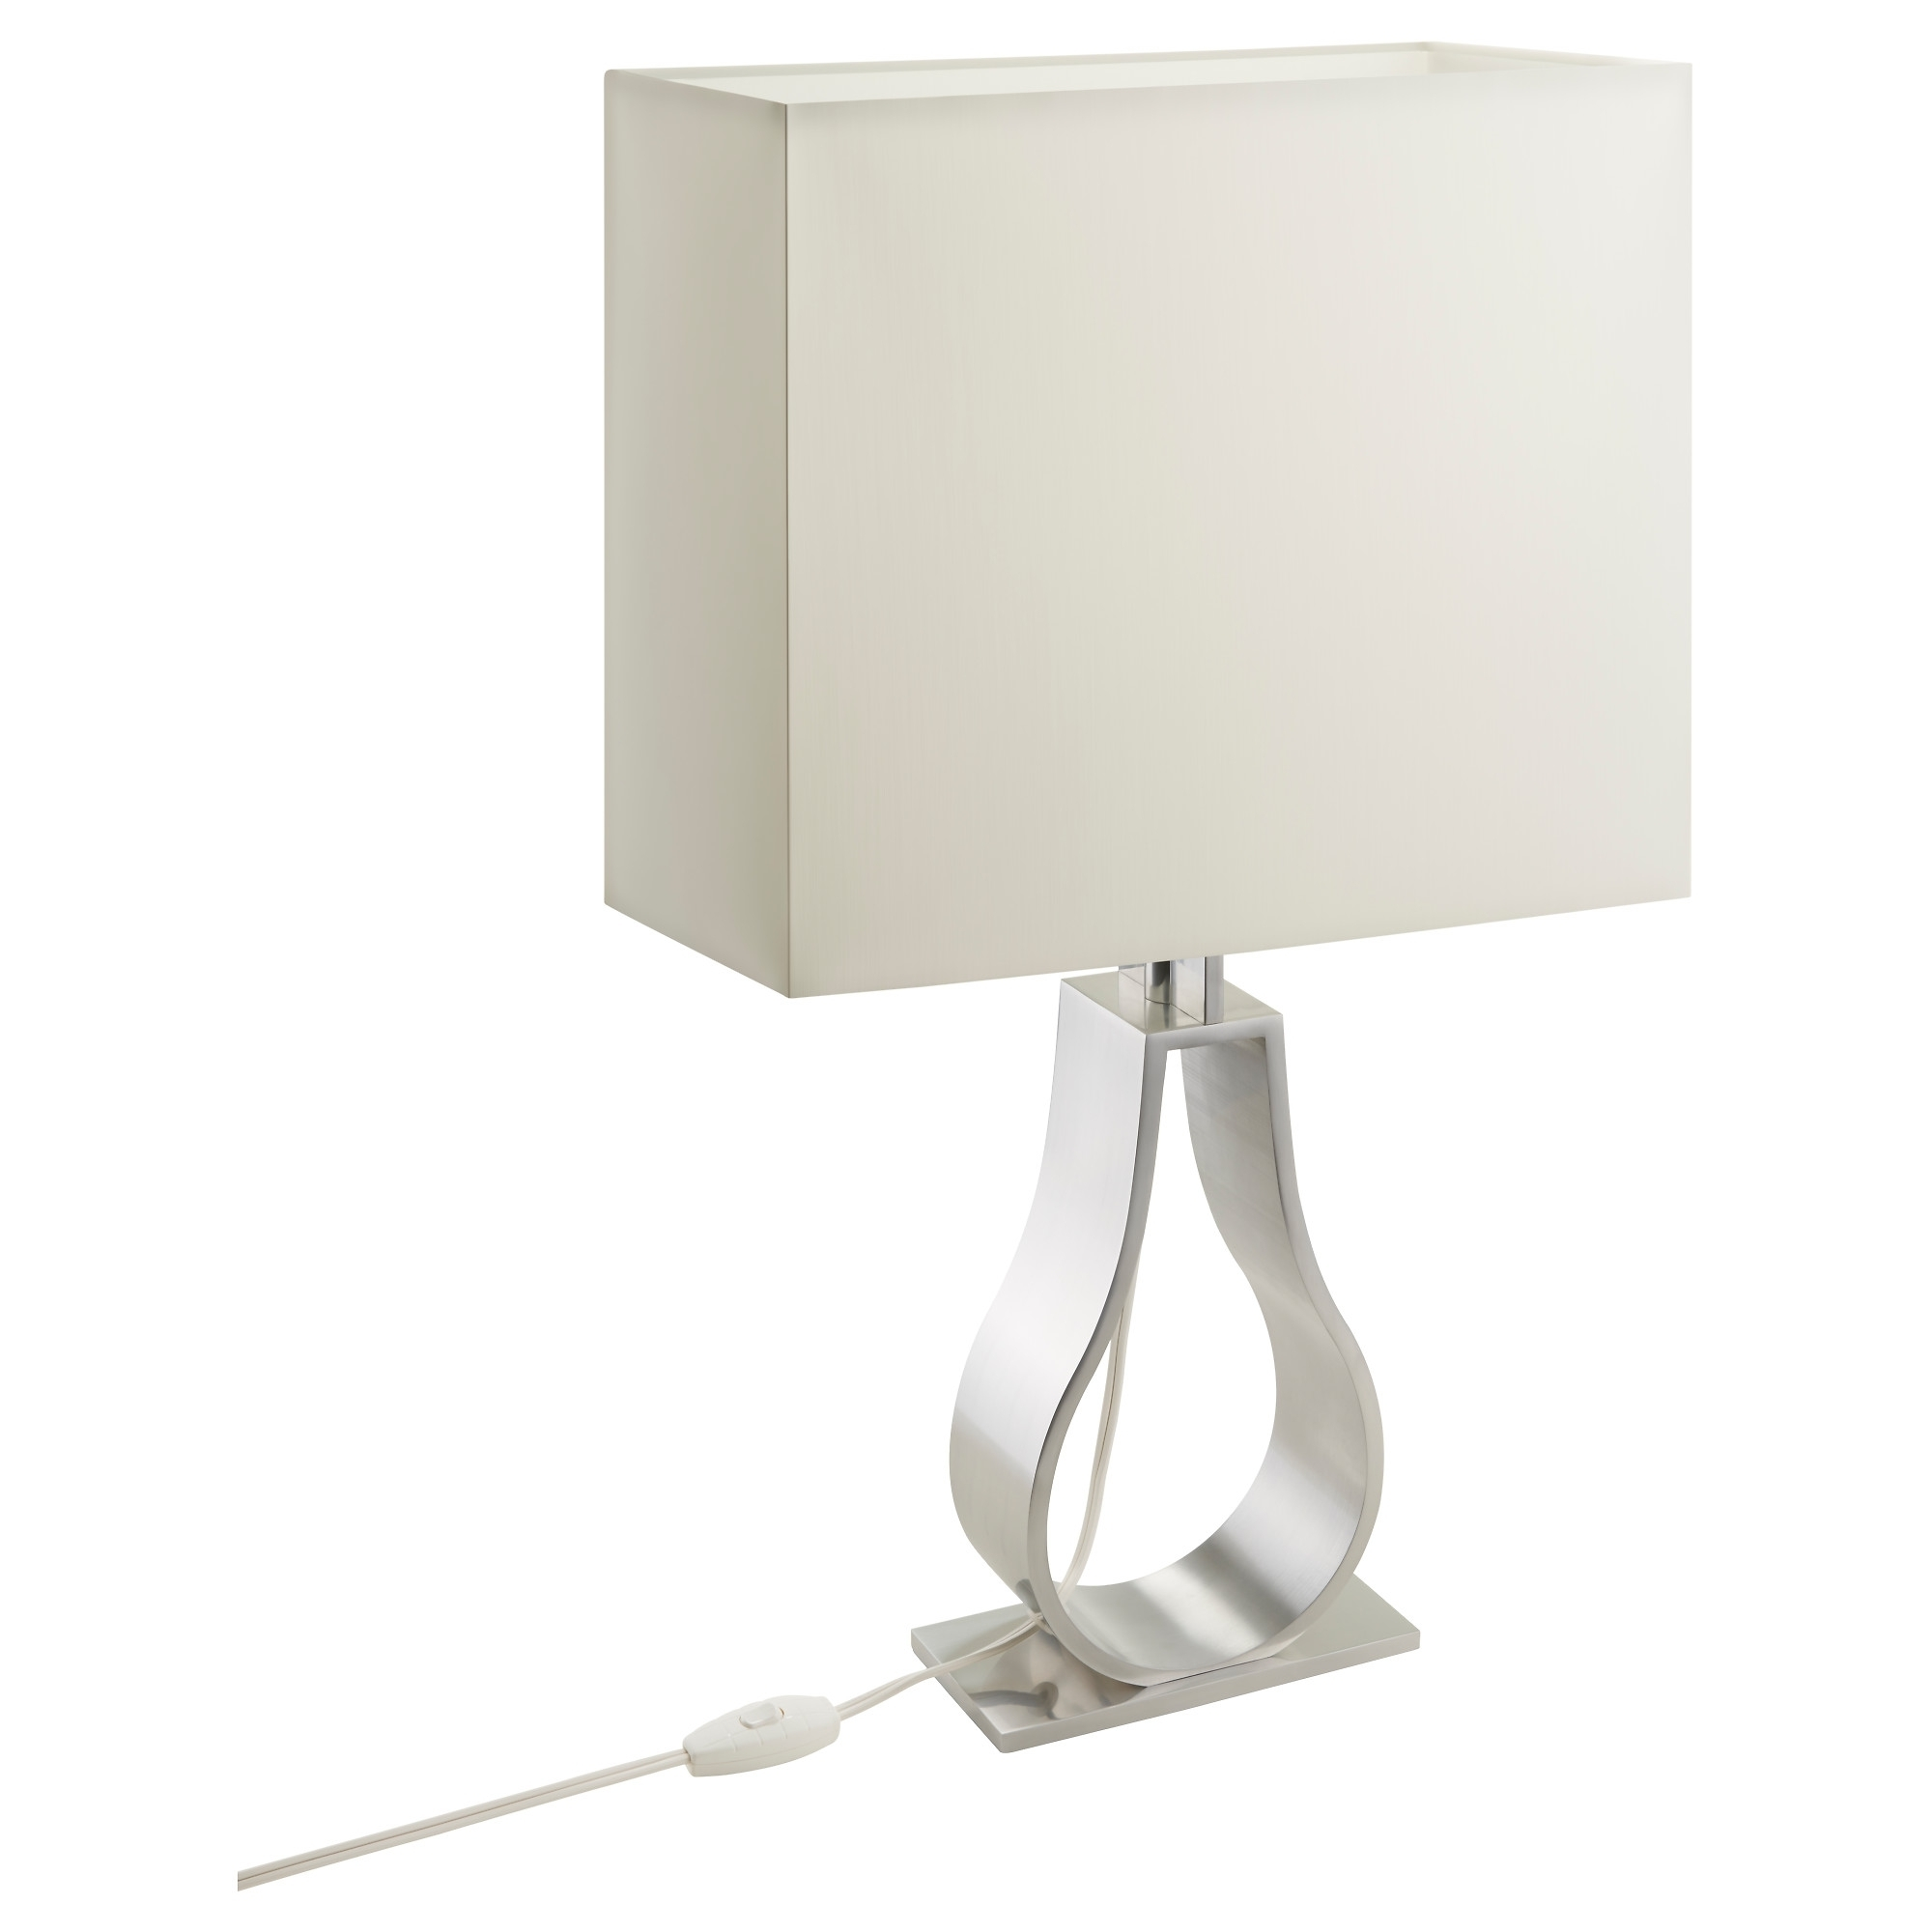 2018 Top 66 Preeminent White Lights For Bedroom And Gold Table Lamp Regarding Ceramic Living Room Table Lamps (View 1 of 20)